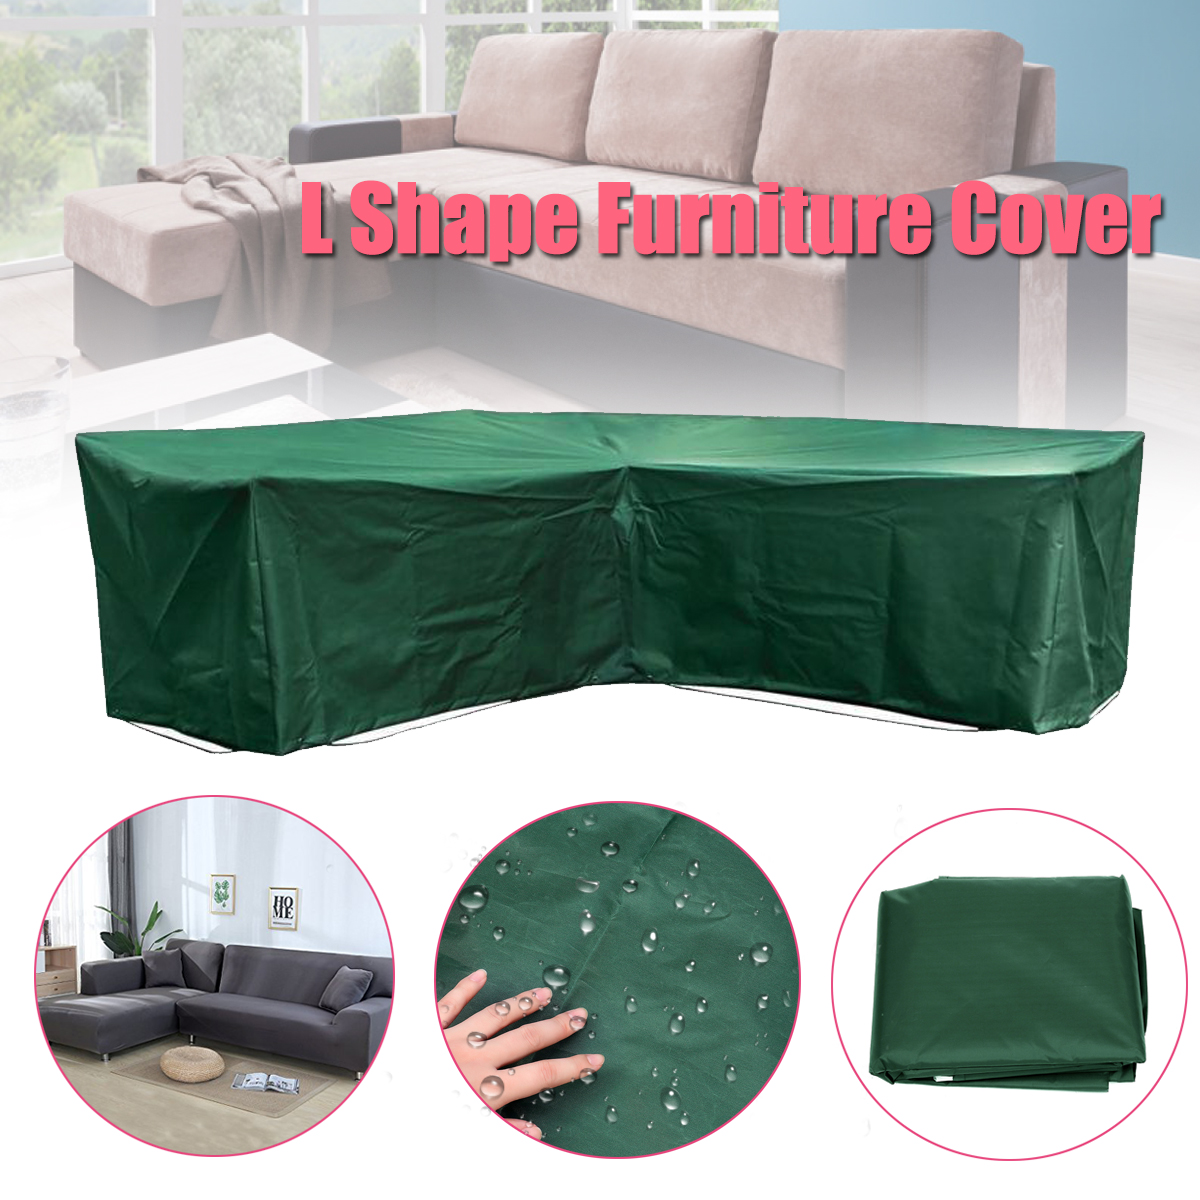 Wicker Furniture Covers Us 32 65 L Shape Dustproof Furniture Cover Waterproof Outdoor Sectional Rain Dust Cover Wicker Corner Sofa Couch Covers All Purpose Green In